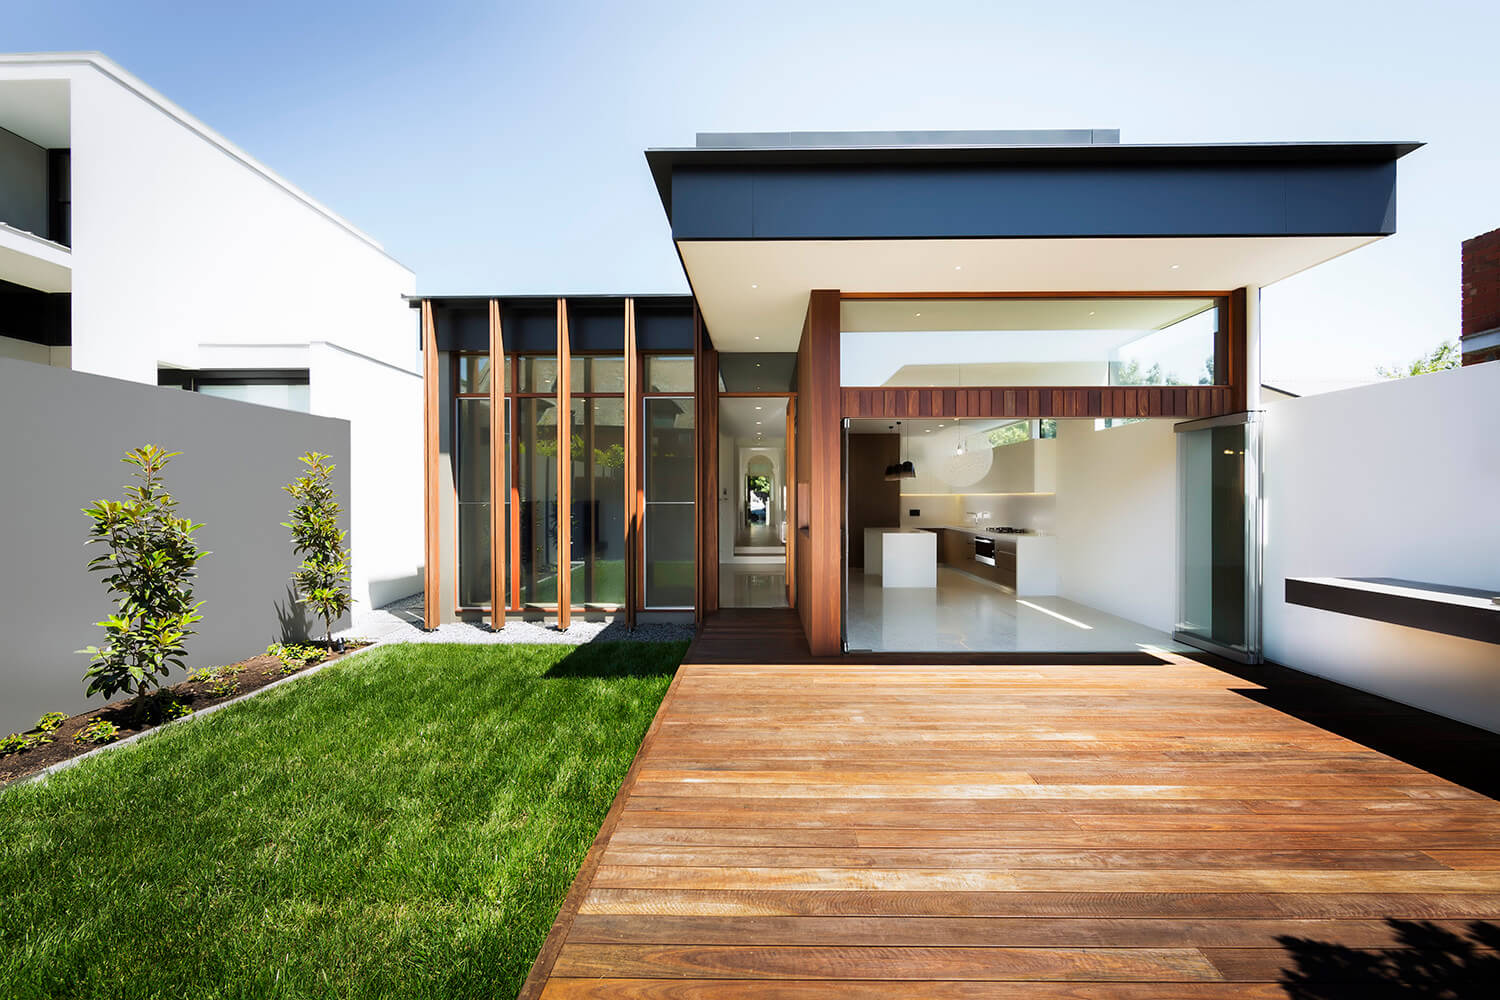 Main facade modern wooden house